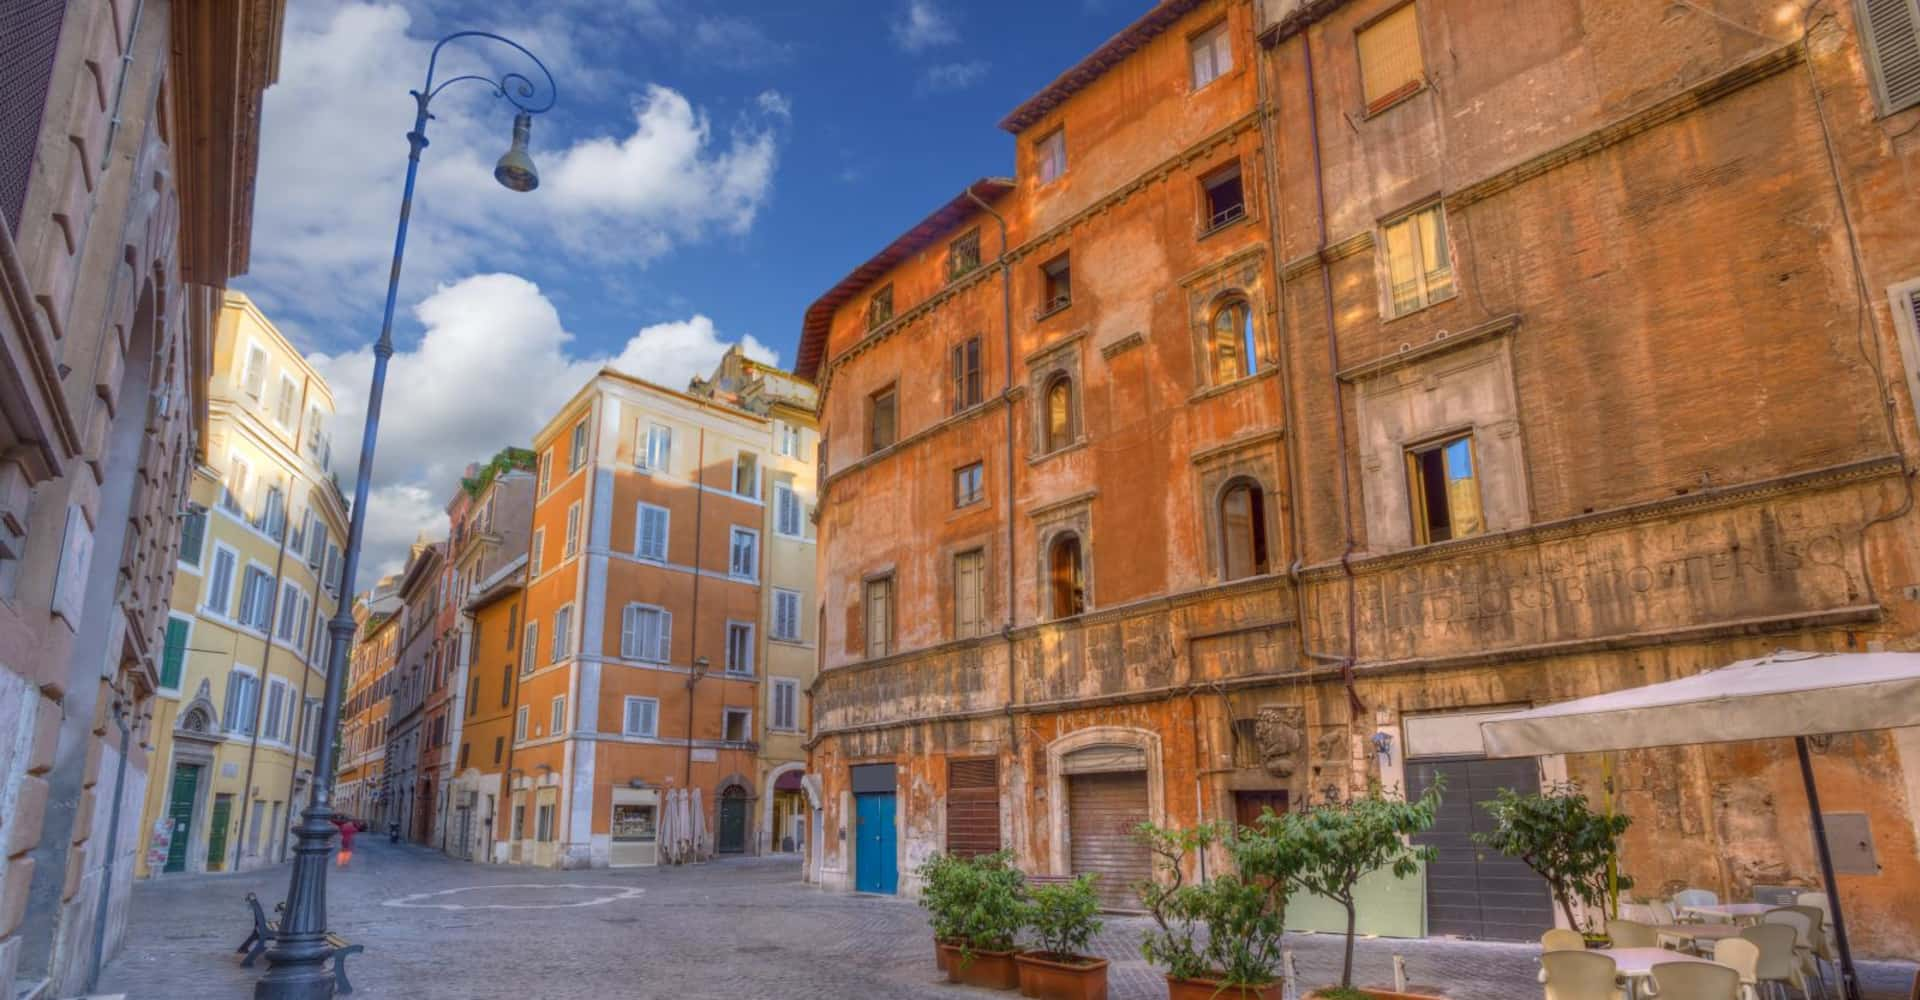 The Jewish Ghetto - The First Roma Dolce